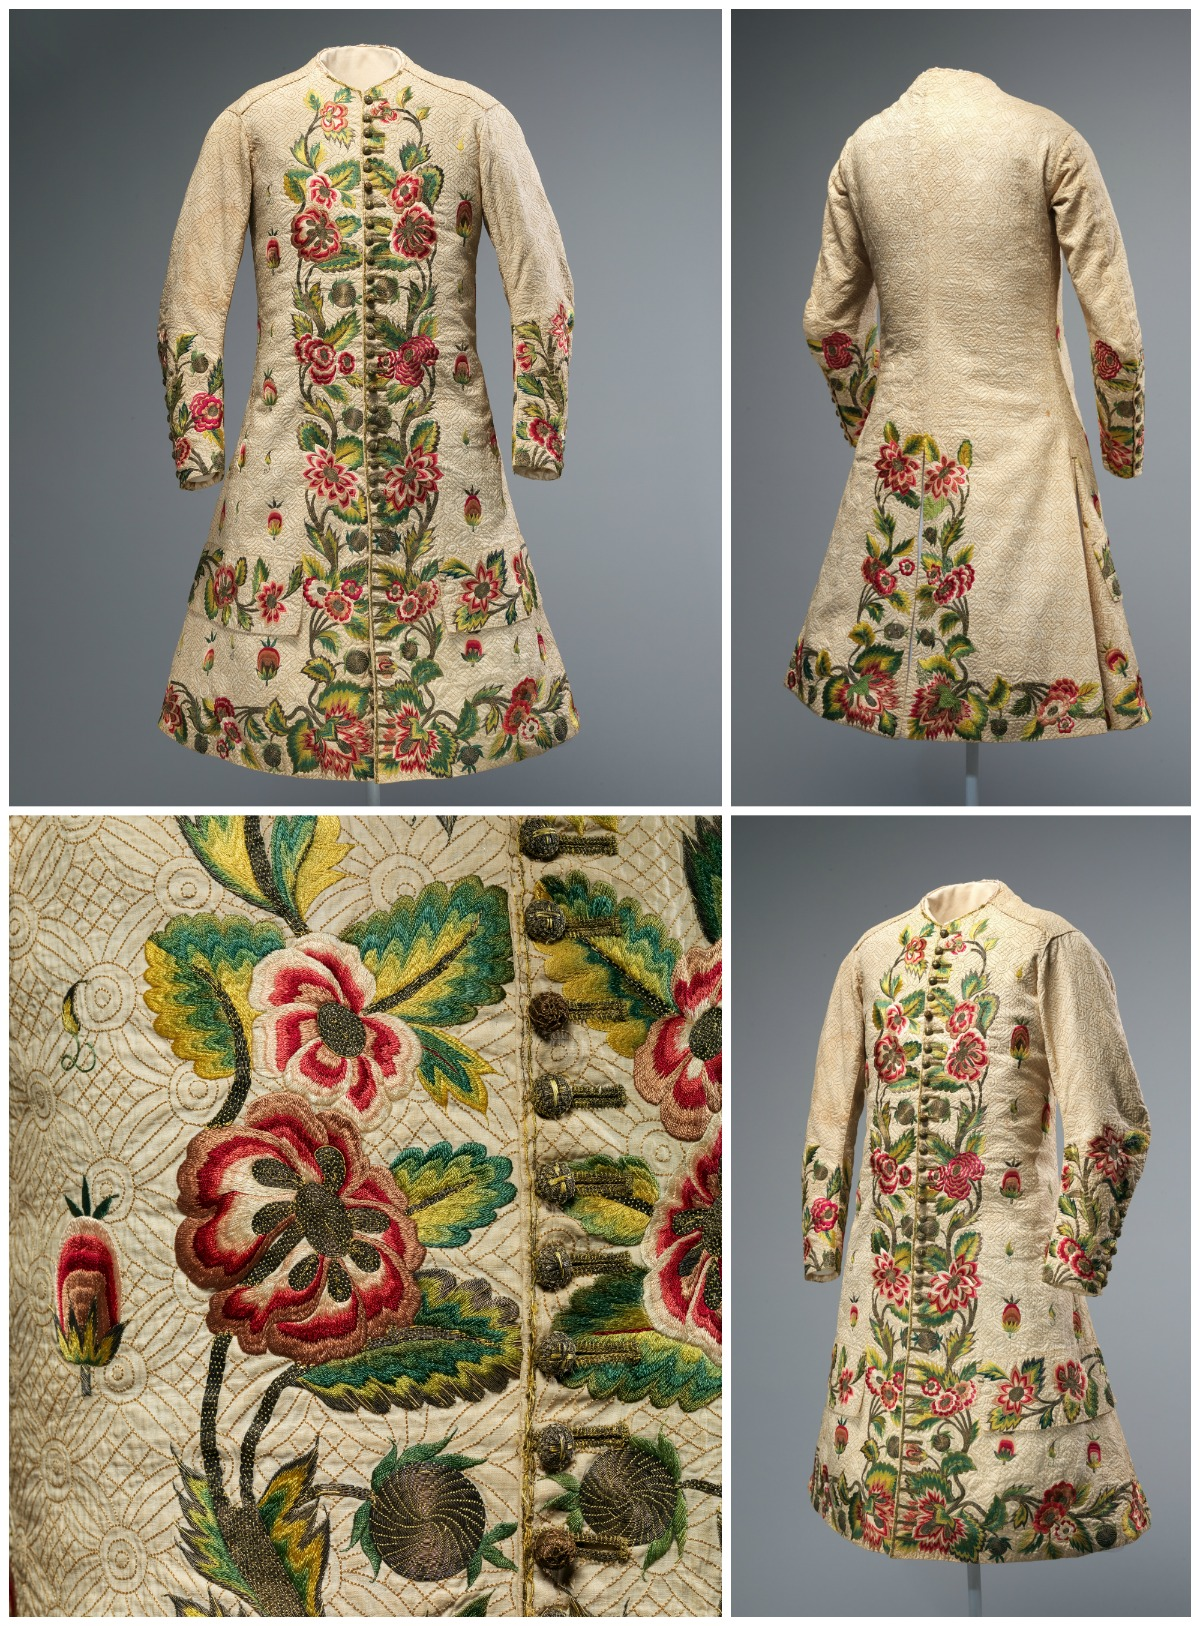 c1710. British. Linen, silk, metallic thread. metmuseum